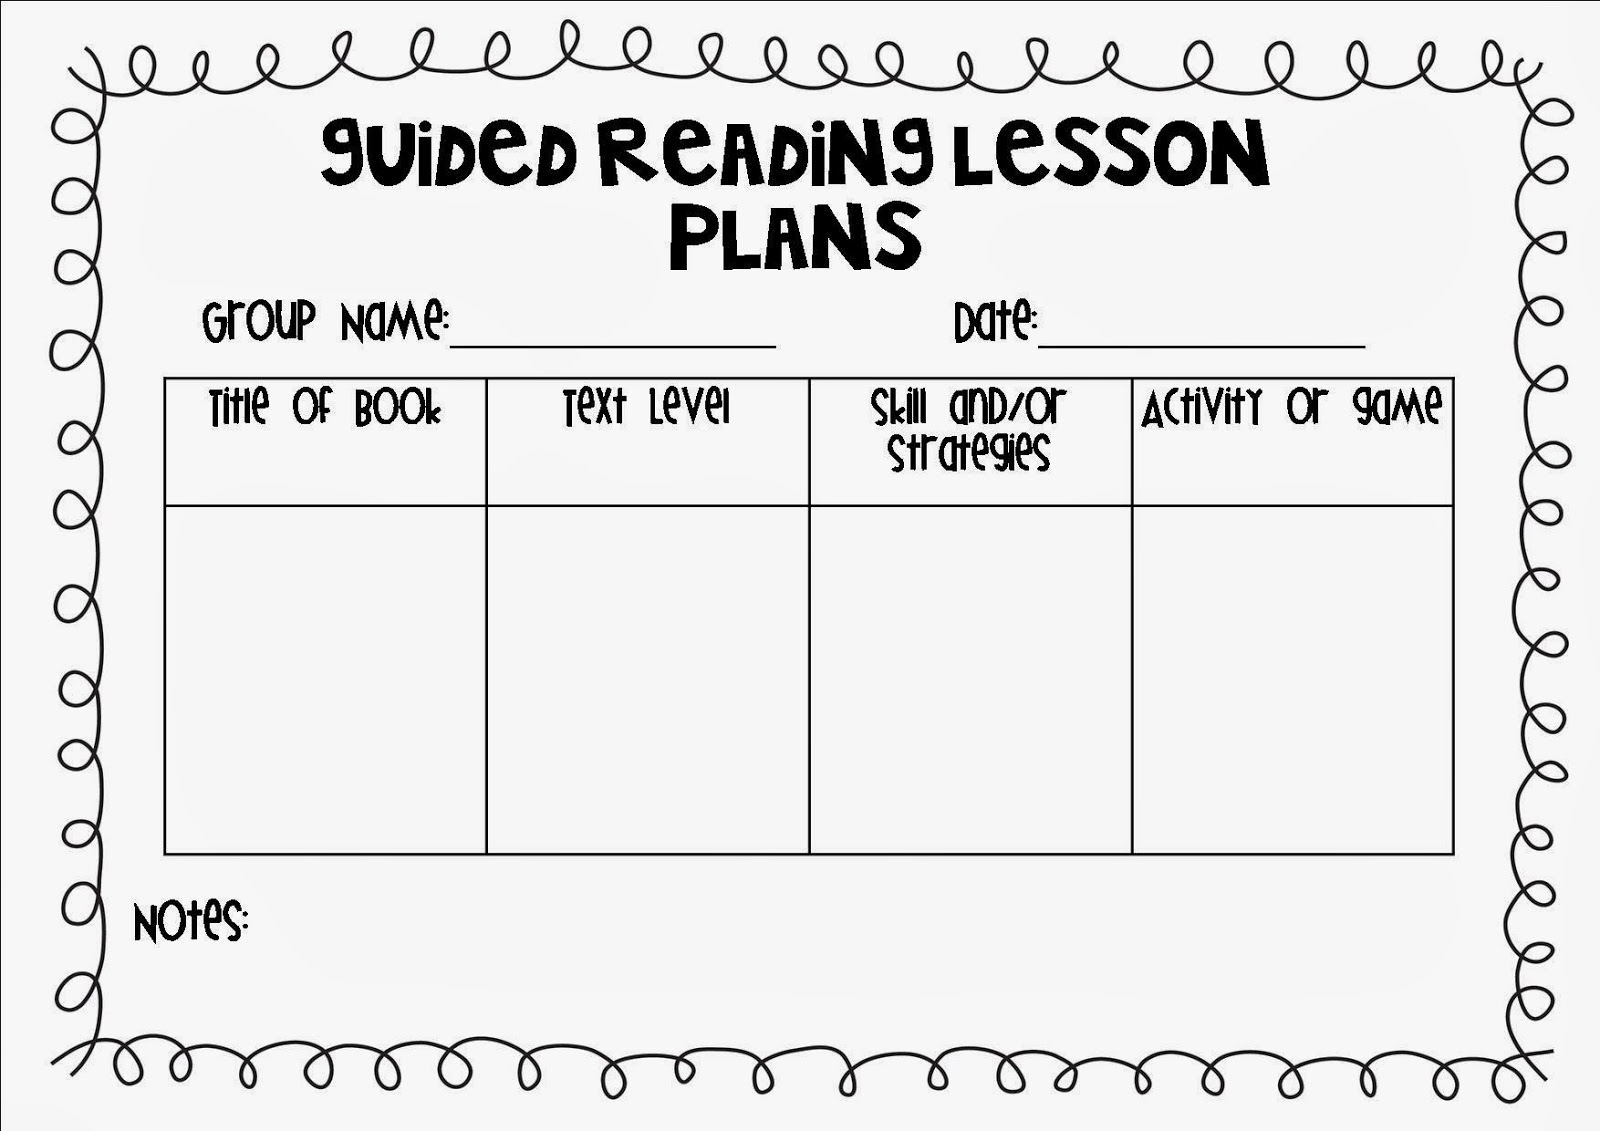 guided reading lesson plan template document blank guided reading lesson plan template plans. Black Bedroom Furniture Sets. Home Design Ideas